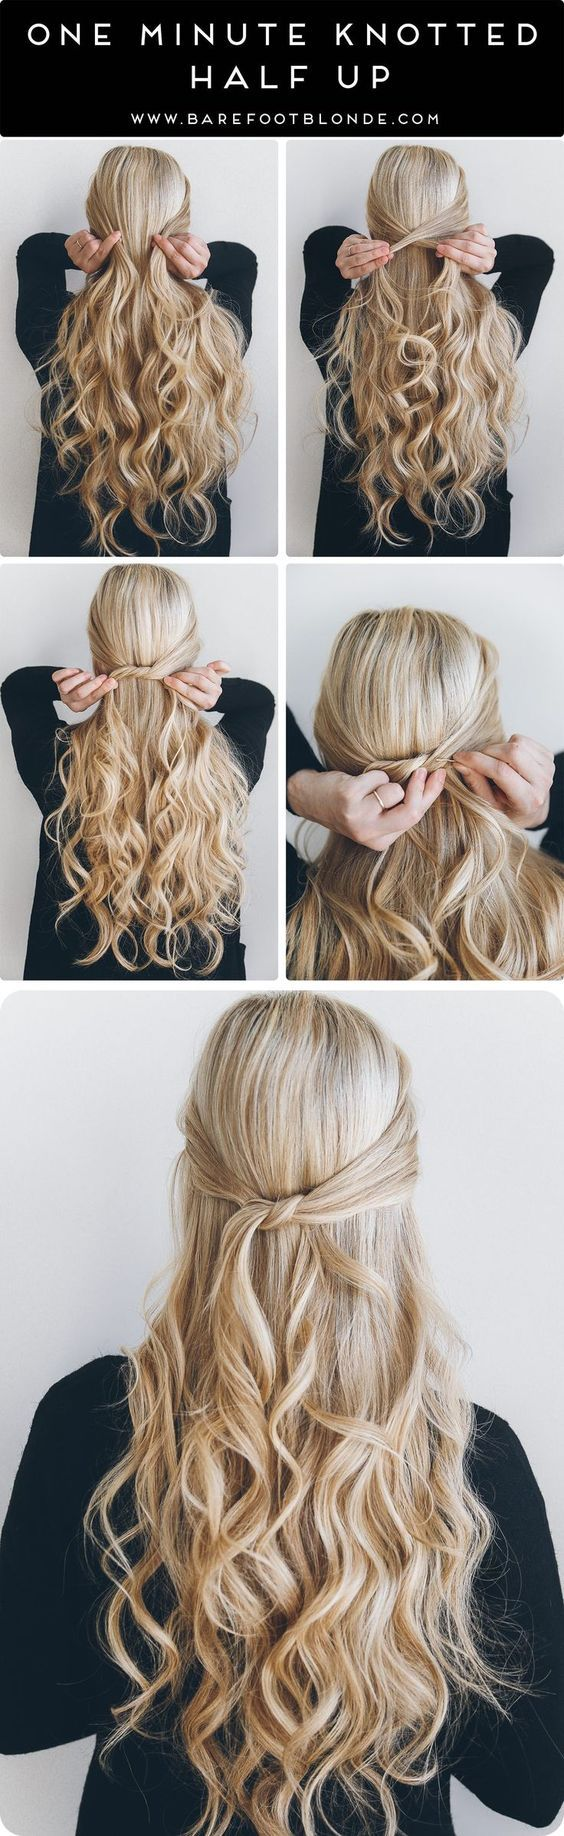 easy half up half down hairstyles one minute knotted half up